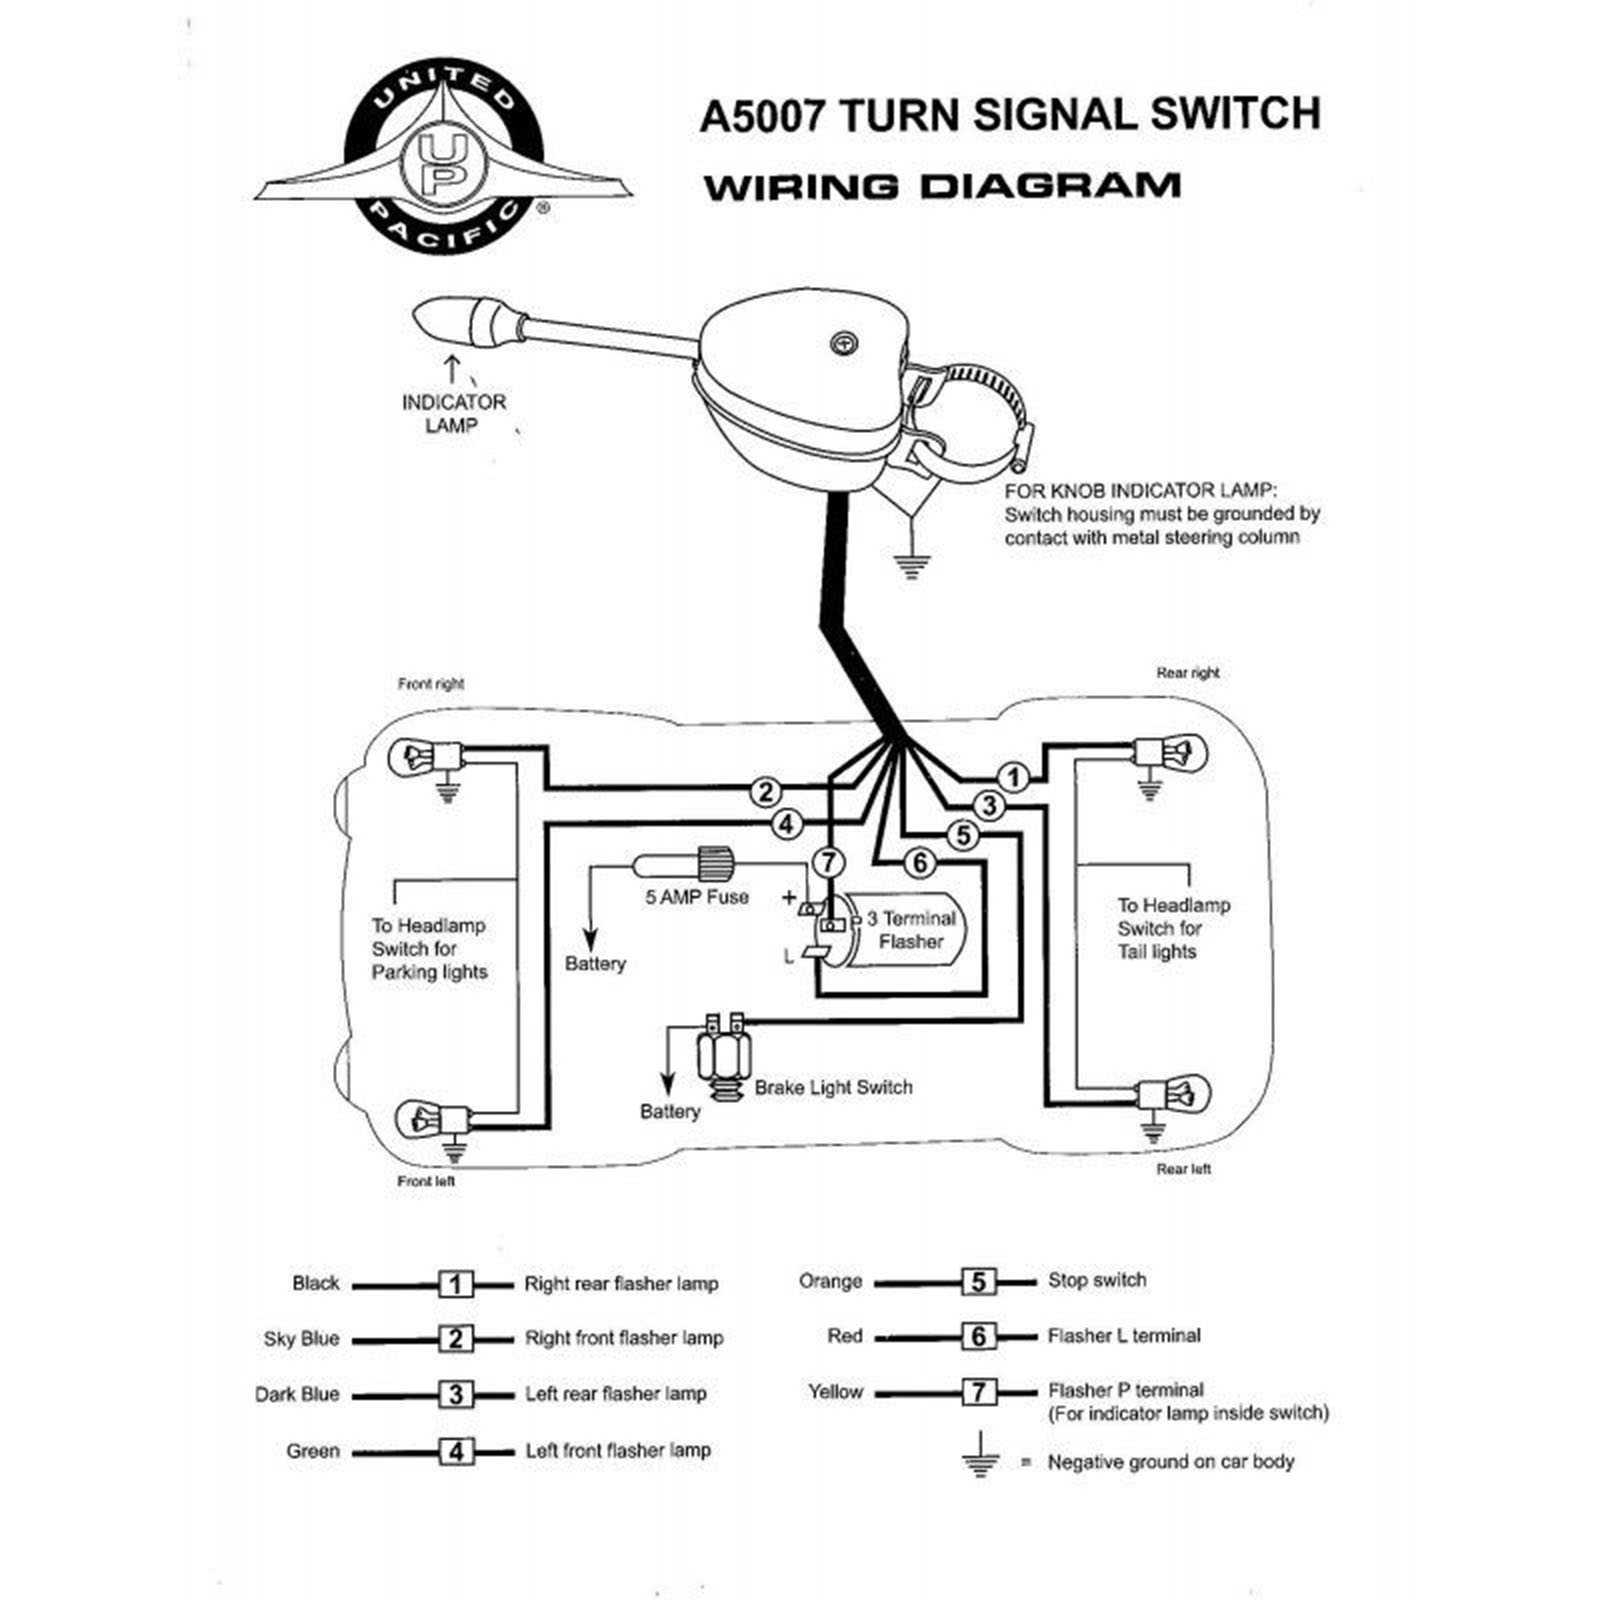 hight resolution of 3 wire turn signal diagram wiring diagram repair guides 1957 jeep 3 wire turn signal diagram